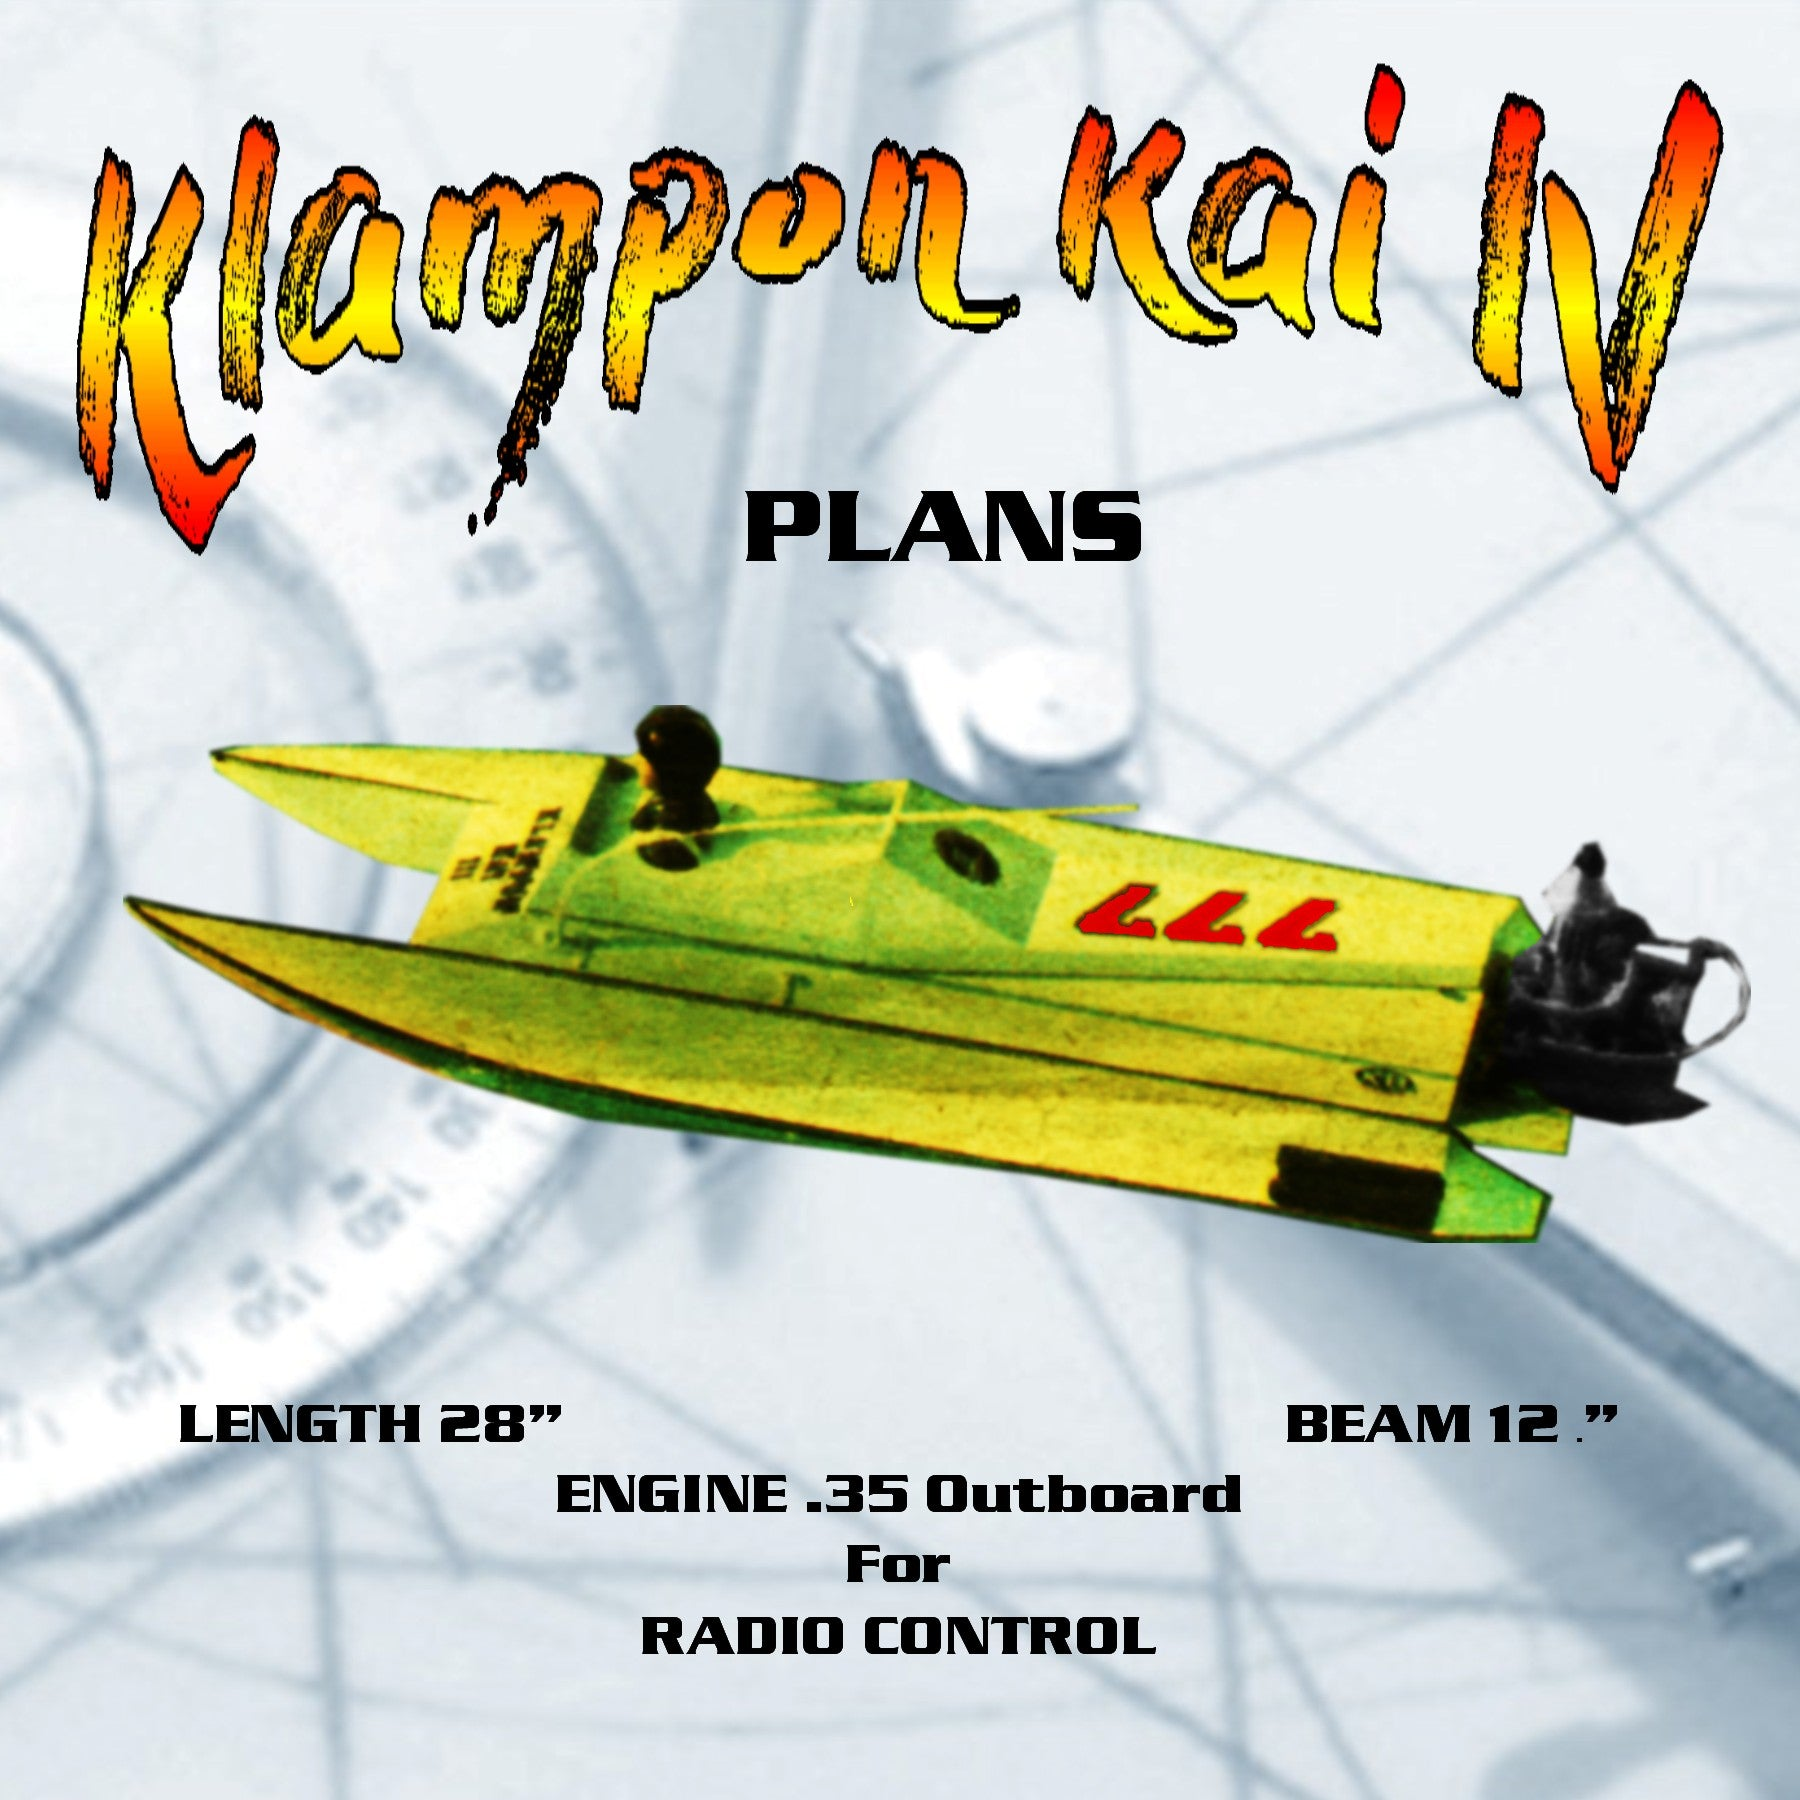 "FULL SIZE PLANS-.35 Outboard Raceing boat L28"" Klampon Kai IV for Radio Control"